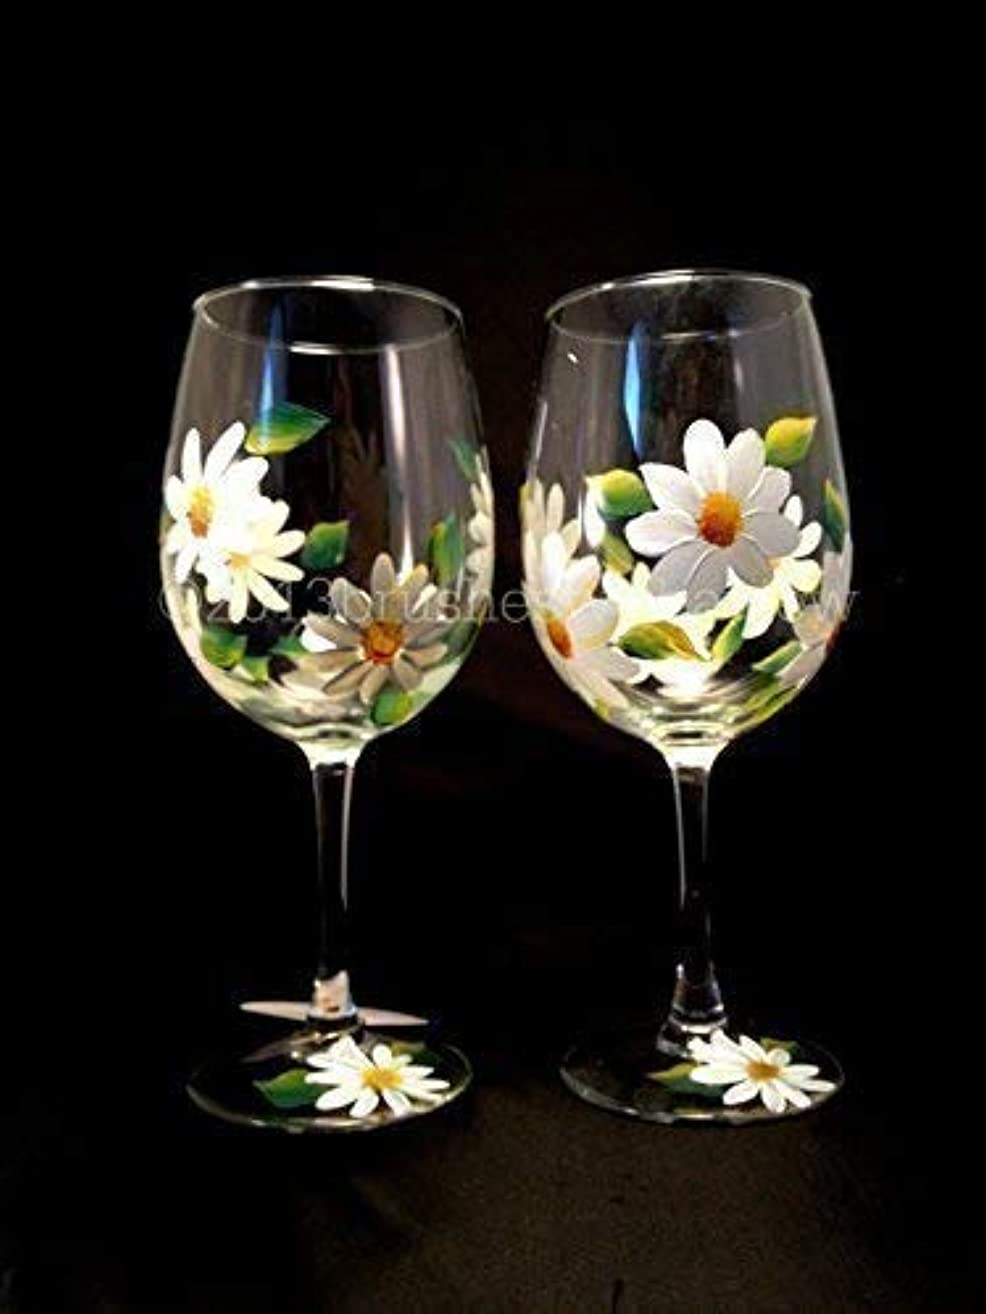 Handmade Flower Wine Glasses, Set of 2, Floral Wine Glasses, Hand Painted Wine Glasses, Perfect Mothers Day Gift for Mom or Wedding Party Favors